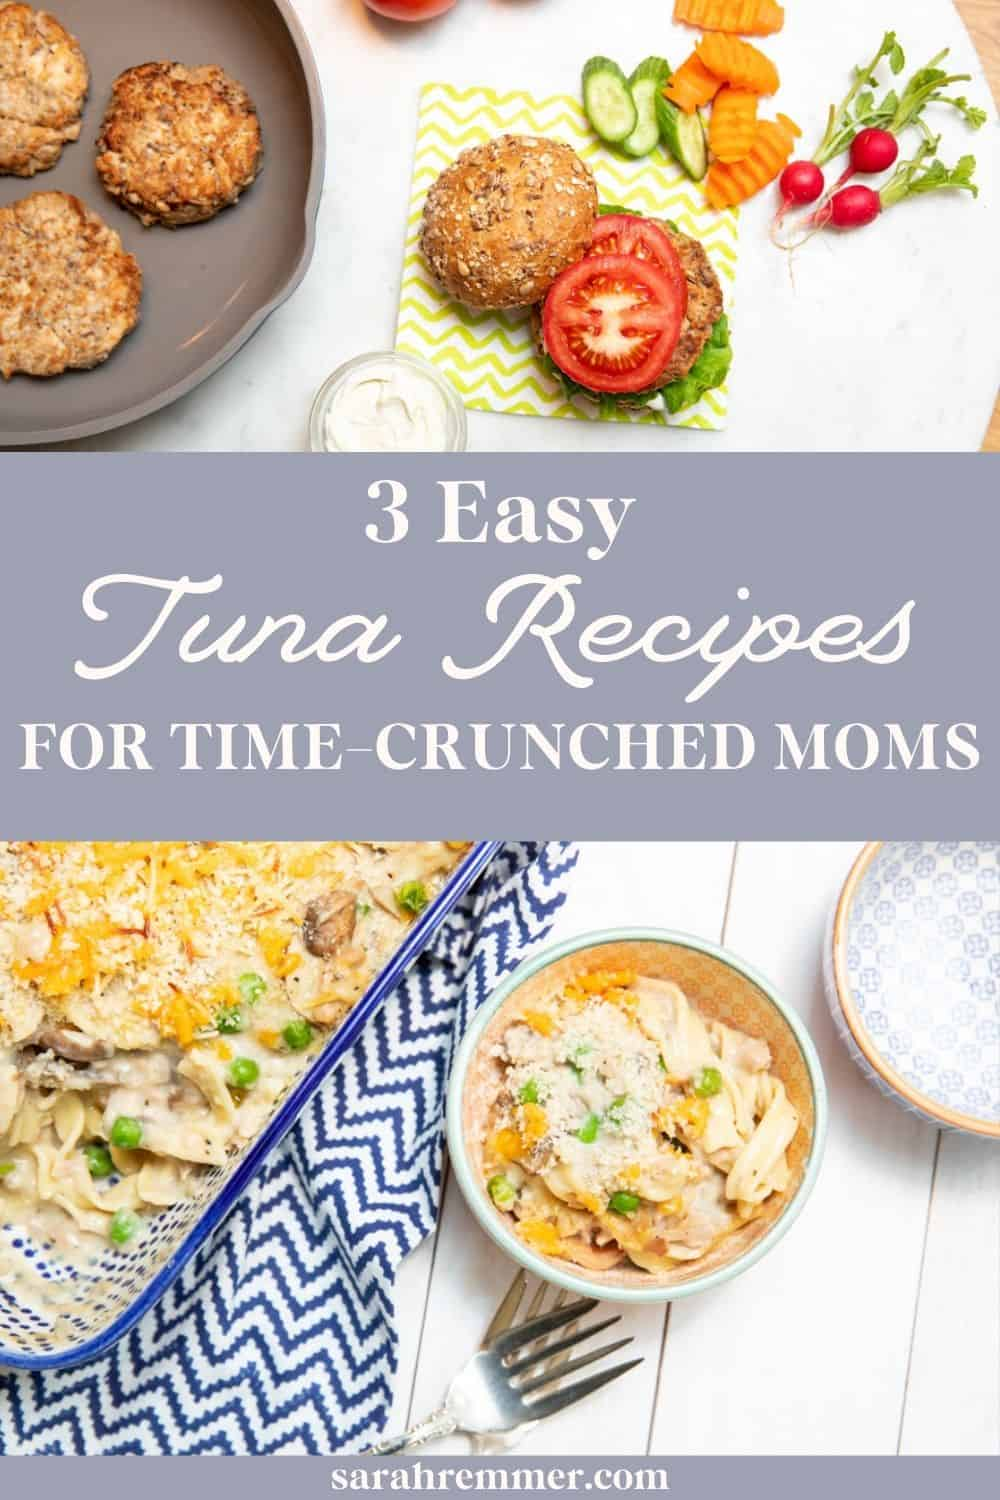 3 Easy Tuna Recipes for Time-Crunched Moms